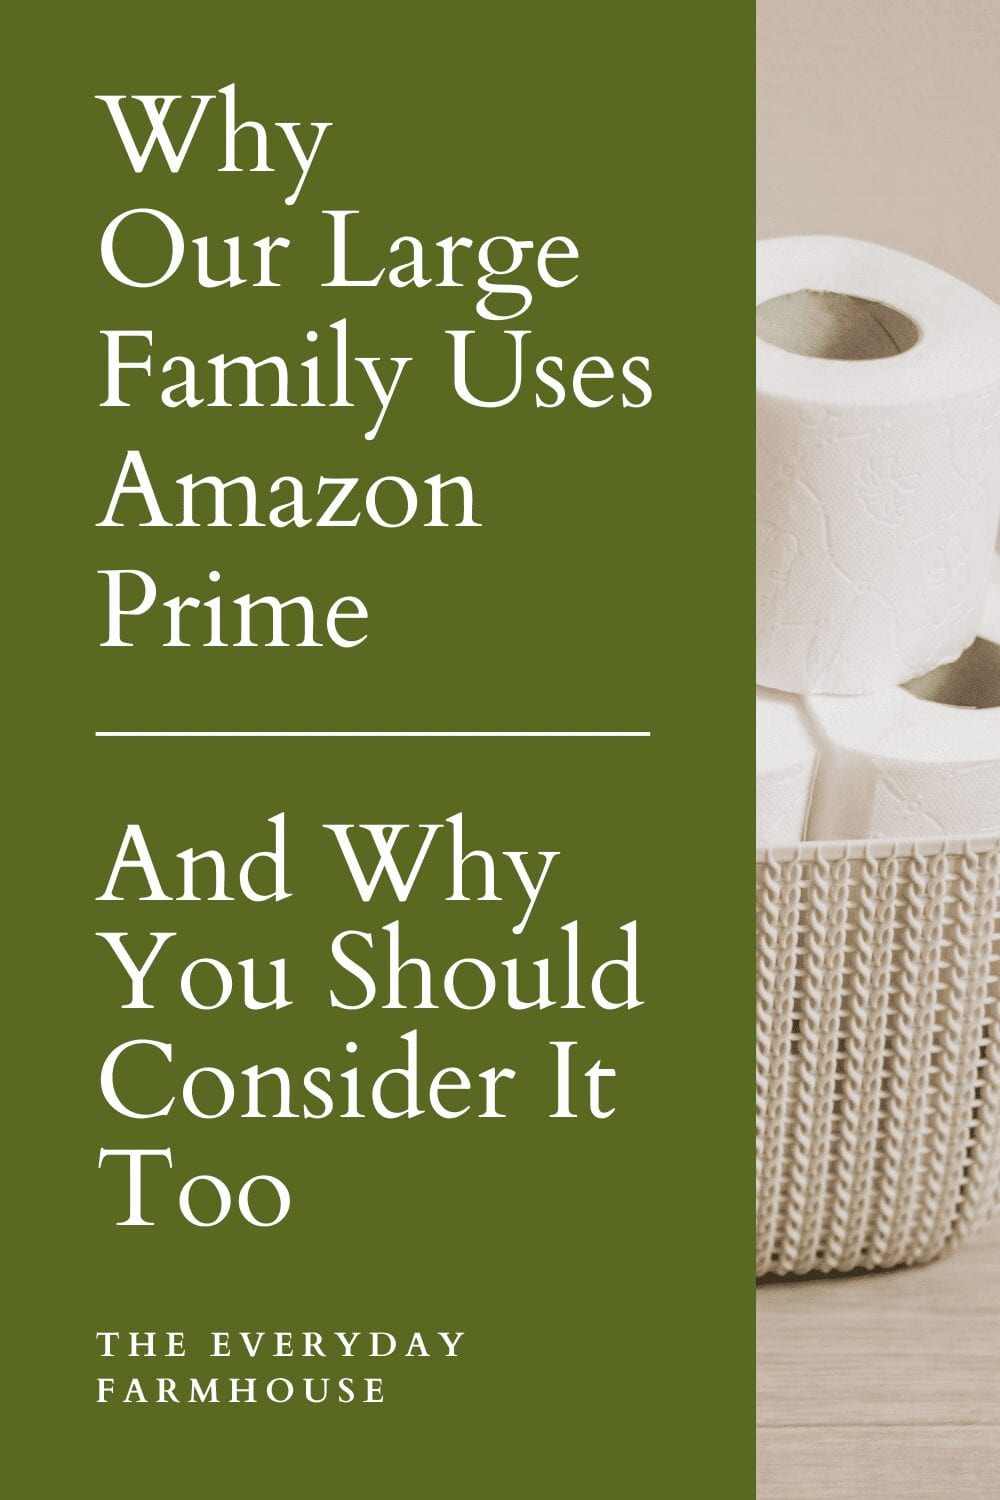 Why Our Large Family Uses Amazon Prime, and Why You Should Consider It Too